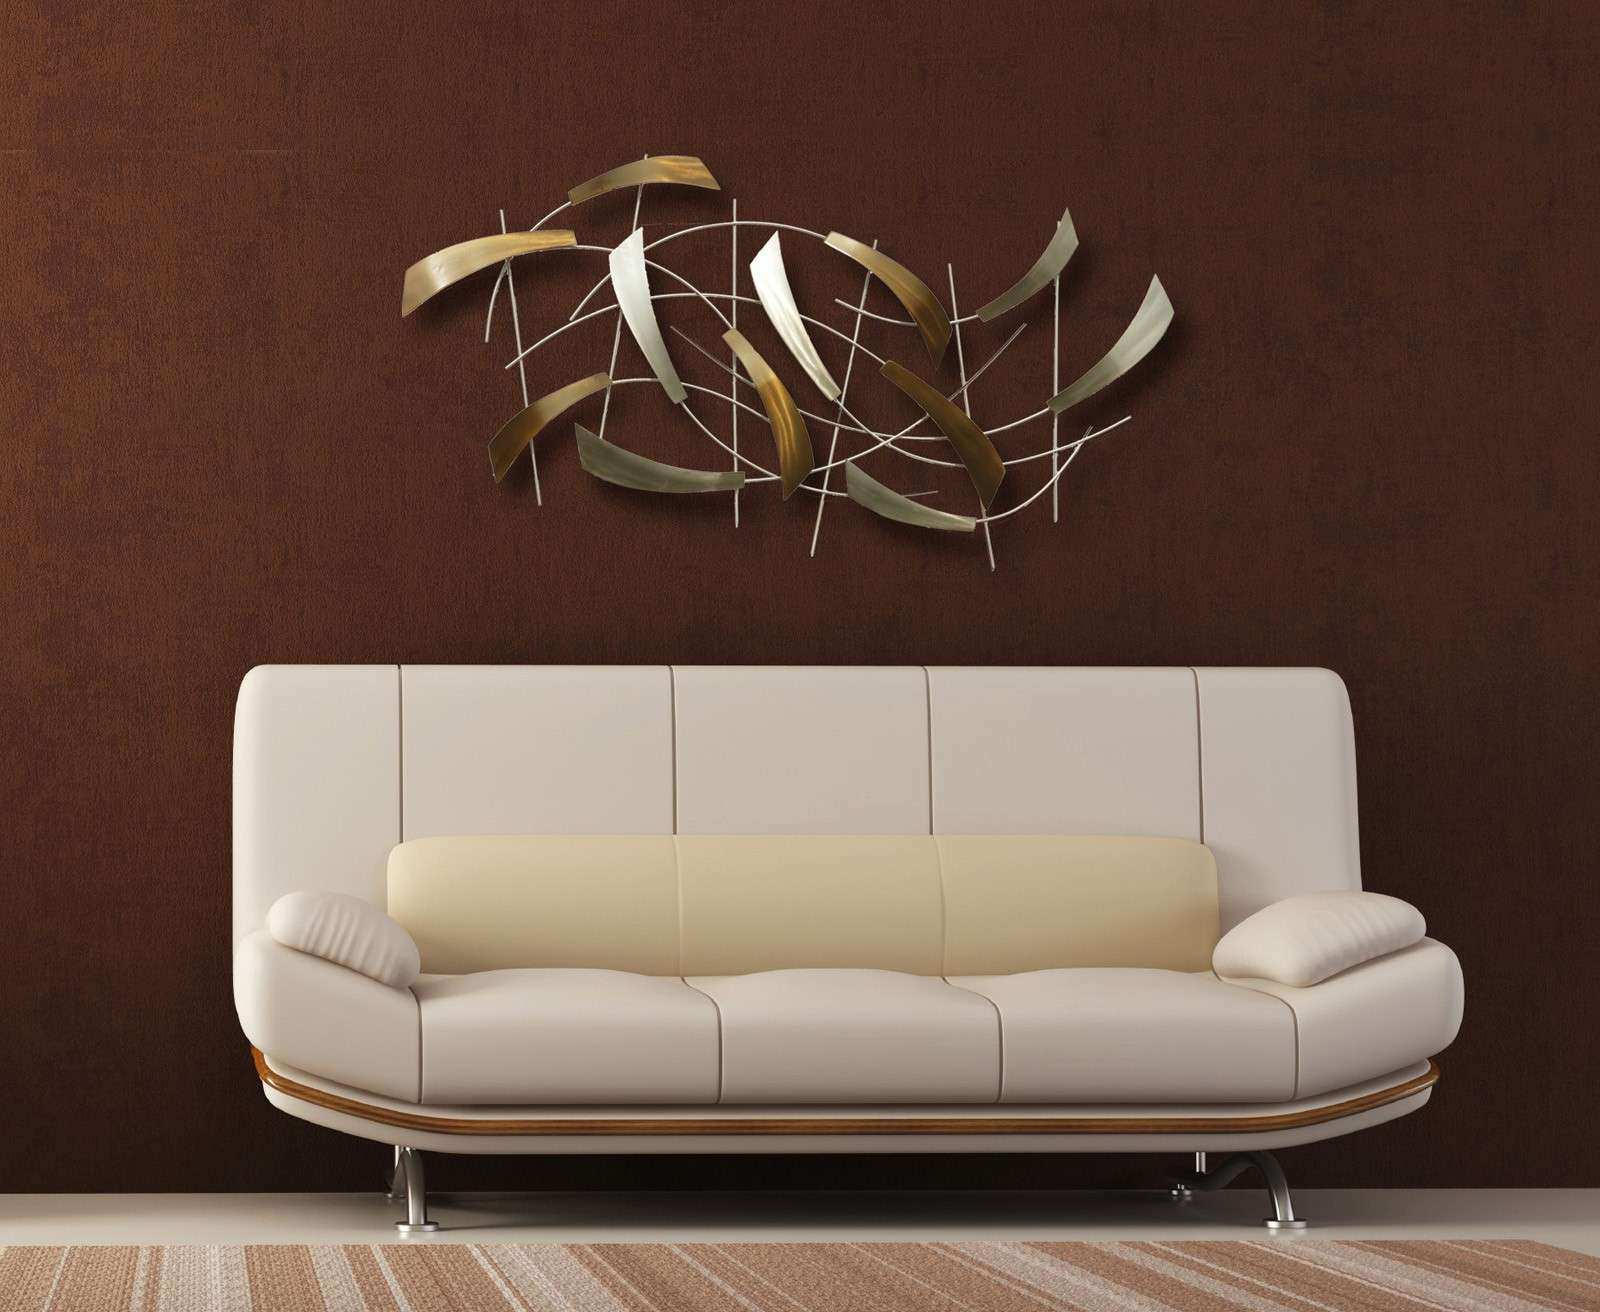 Gift & Home Today New contemporary wall designs are